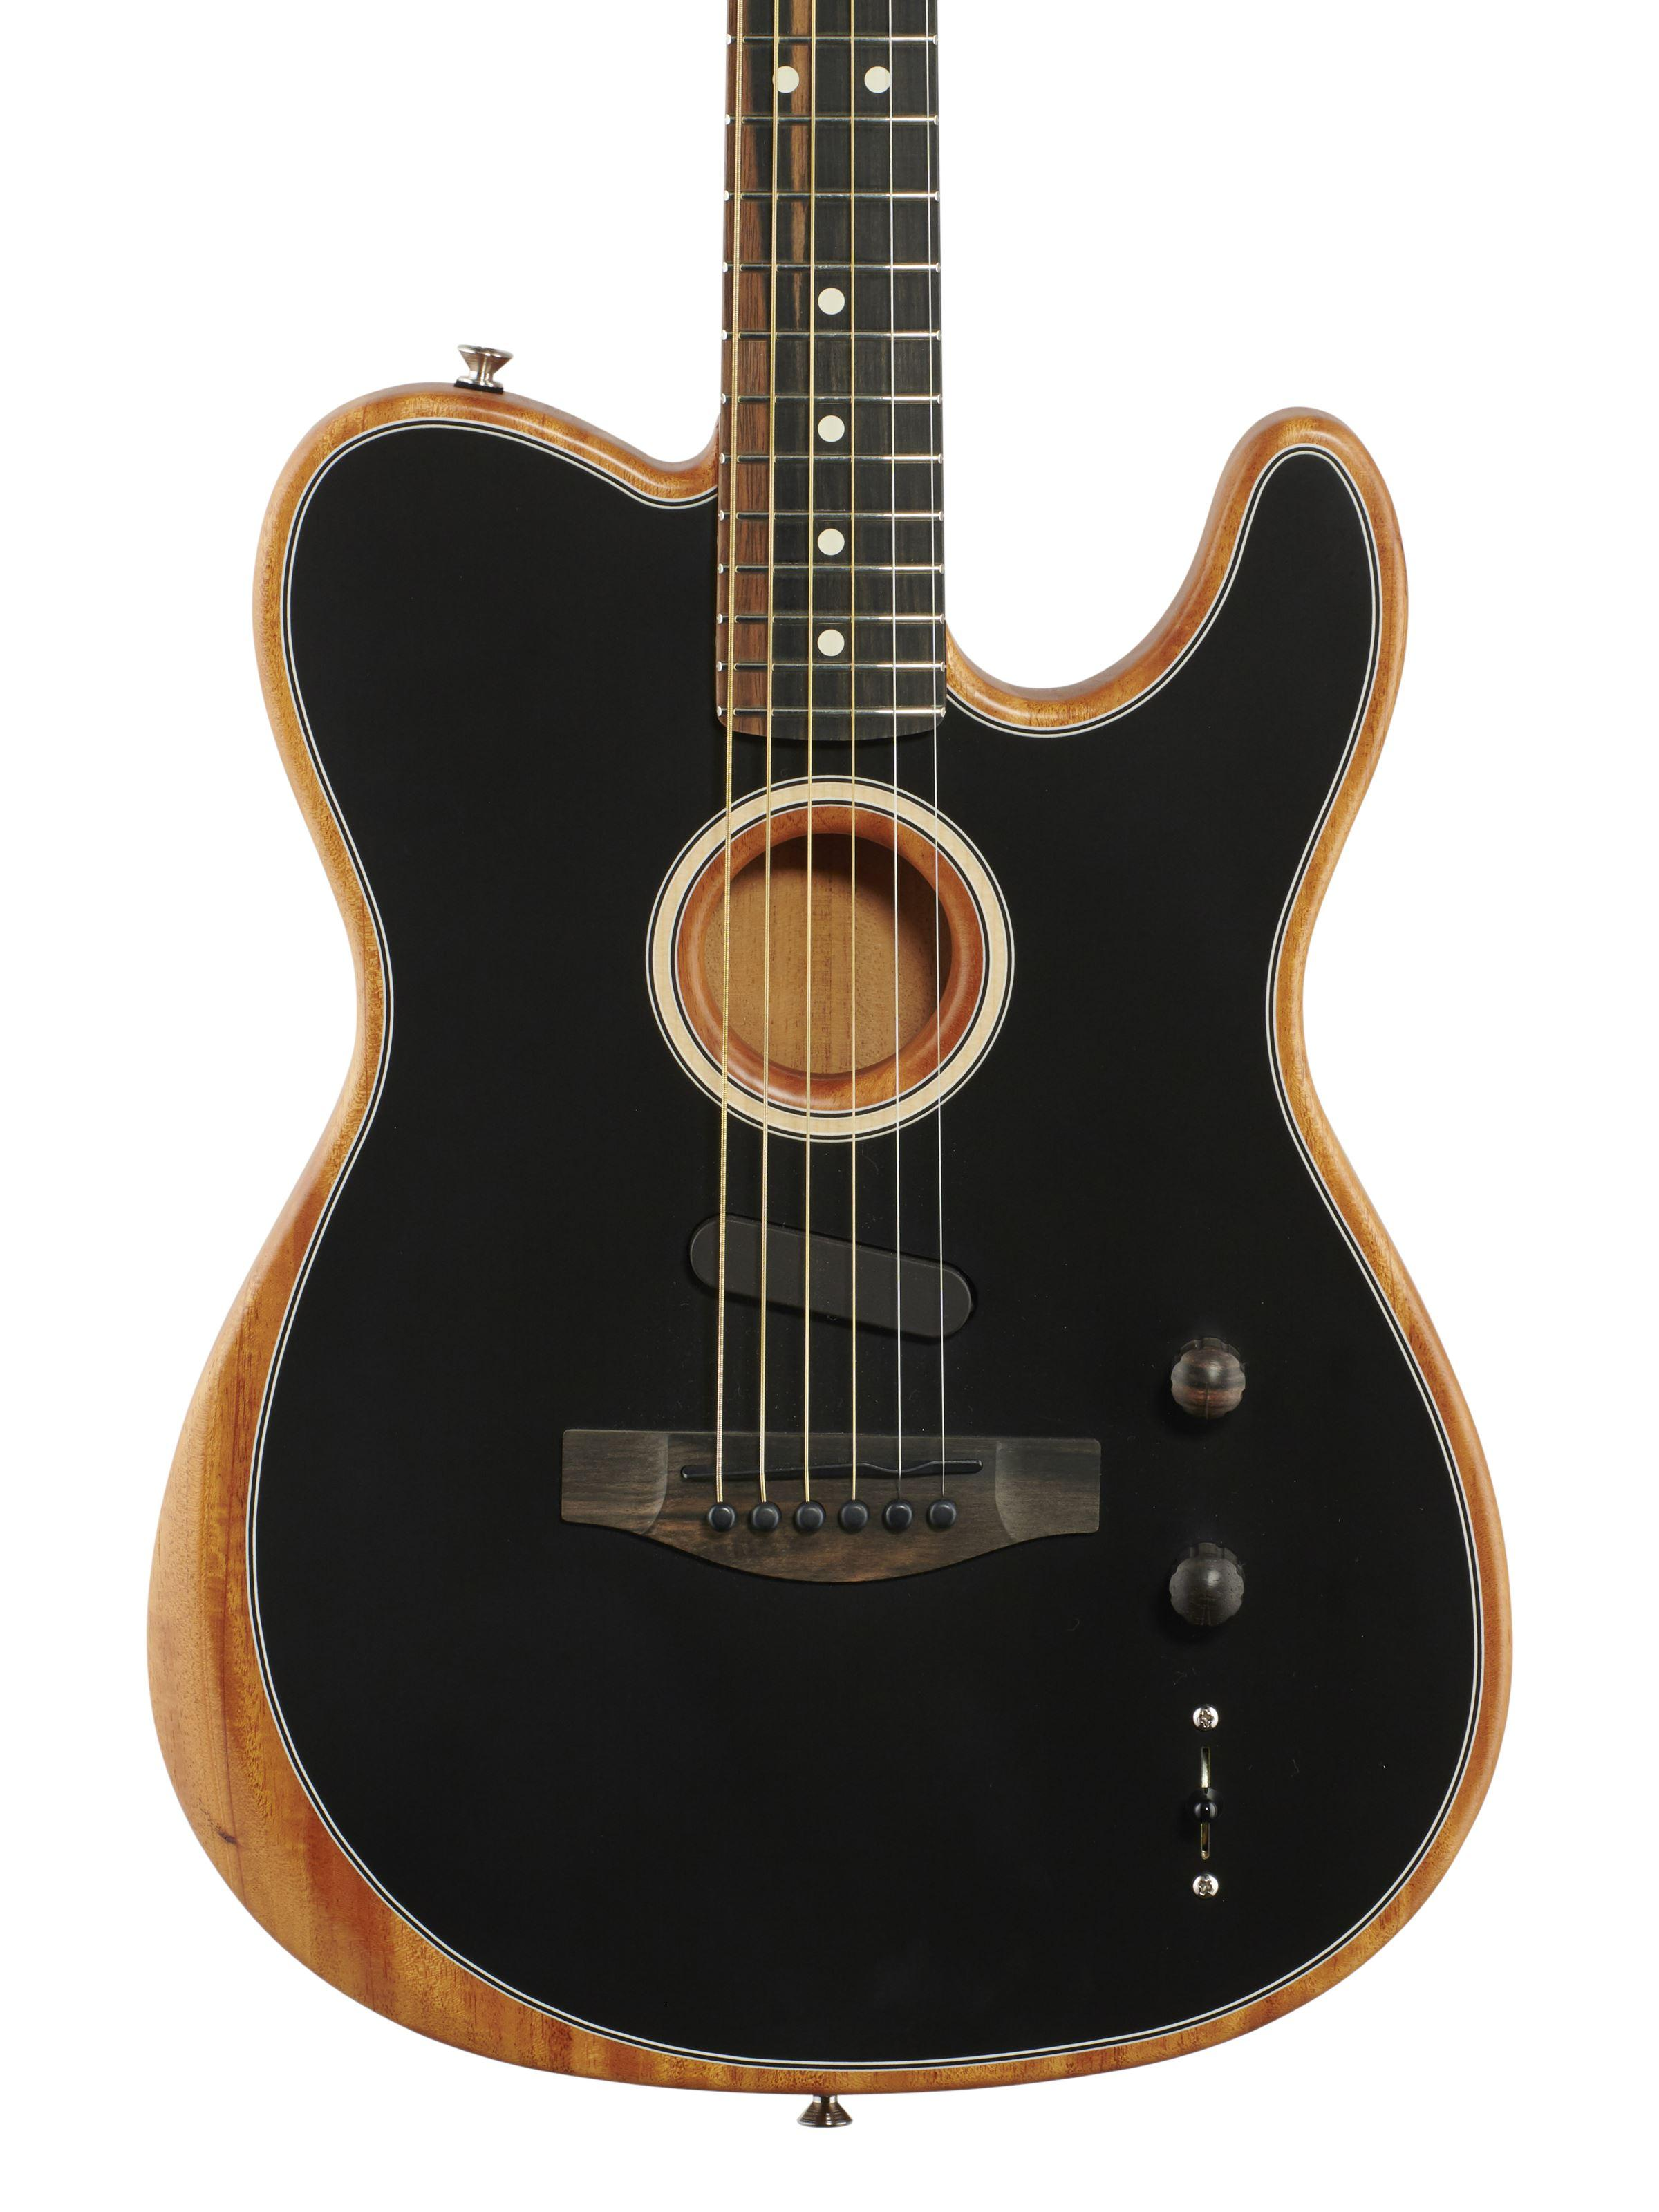 Guitarra Custom Shop Acoustasonic Tele Matte Black Polyester Satin uretano Finish, spurce Top, Profundo C Mahogany Neck, hardware Chrome